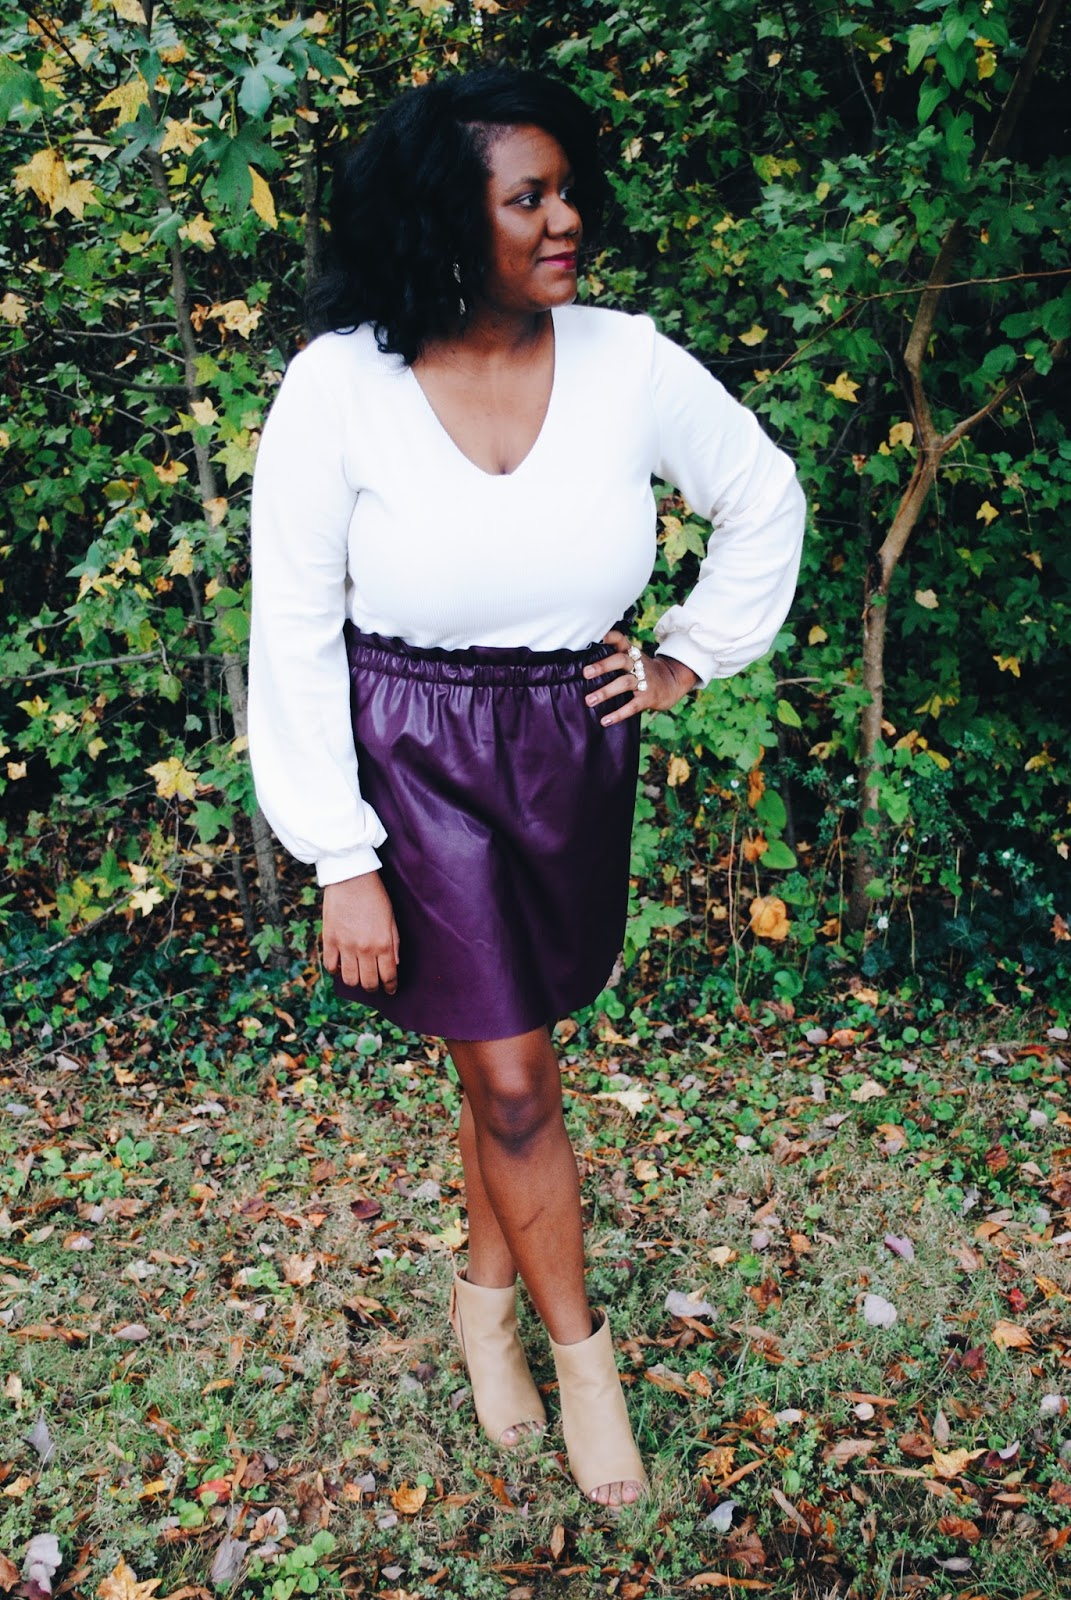 There are so many ways to add a little spice to your wardrobe, but all it takes is one piece to be the game changer. My game changer for this year is this faux leather skirt from Loft that I snagged during their fall sale. I don't know what attracted me to this piece, but I just know that I needed to add it to my closet. I've already got so many awesome outfits planned around this versatile piece that I can't wait to share with all of you. Until then in sharing the 5 reasons why you need a leather skirt in your wardrobe!